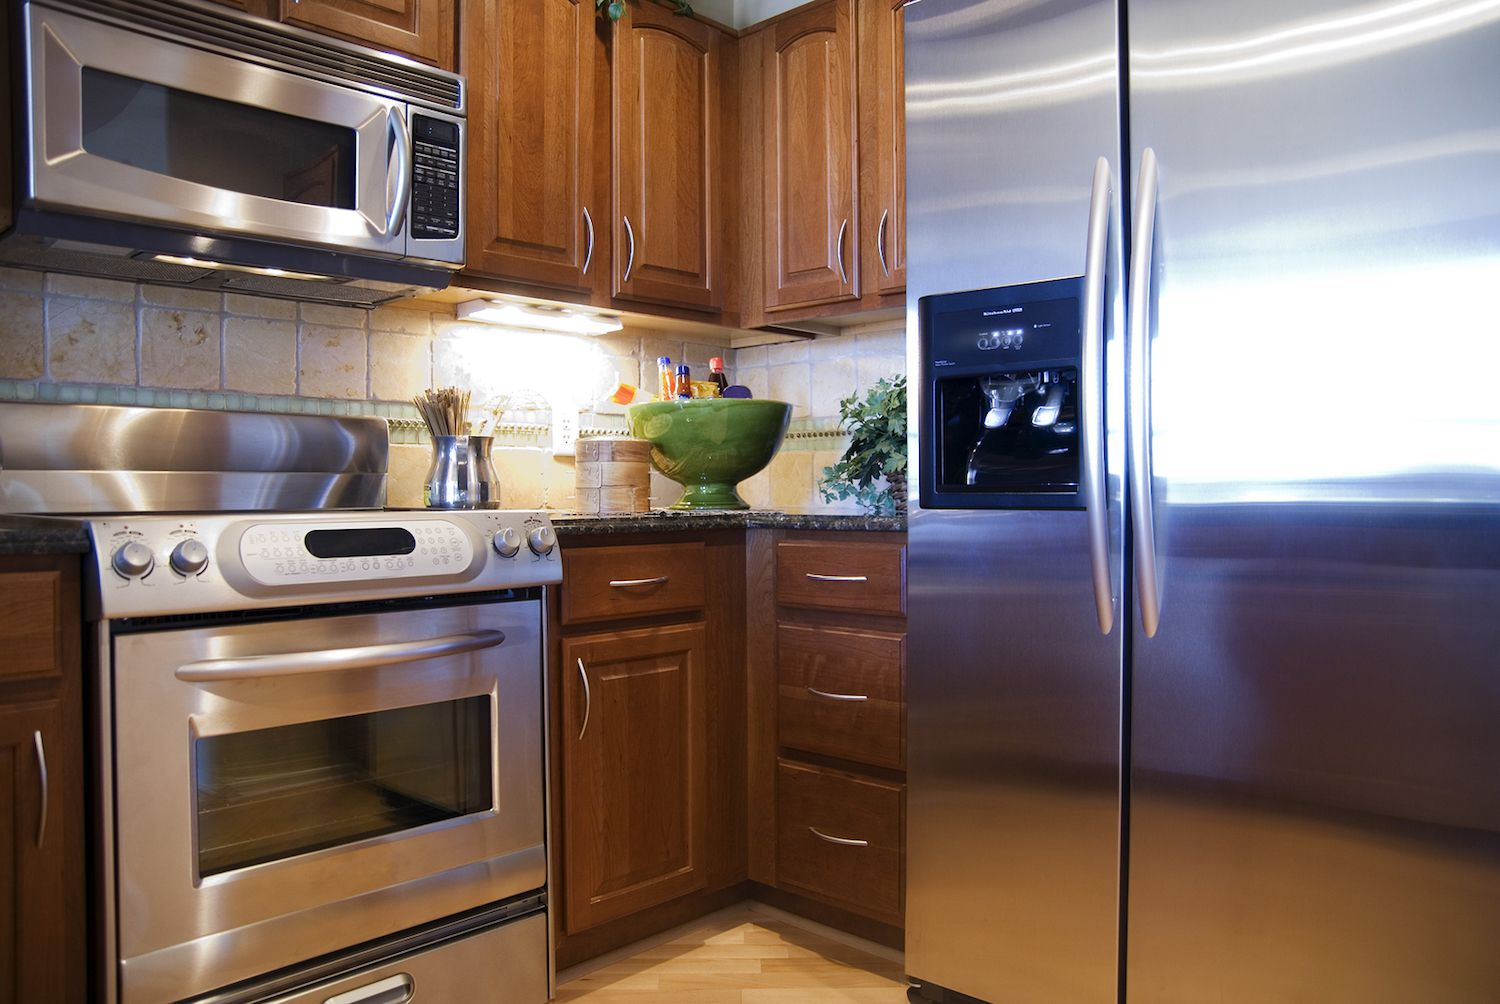 What Are House Fixtures In Real Estate Wiring To A Wall Oven